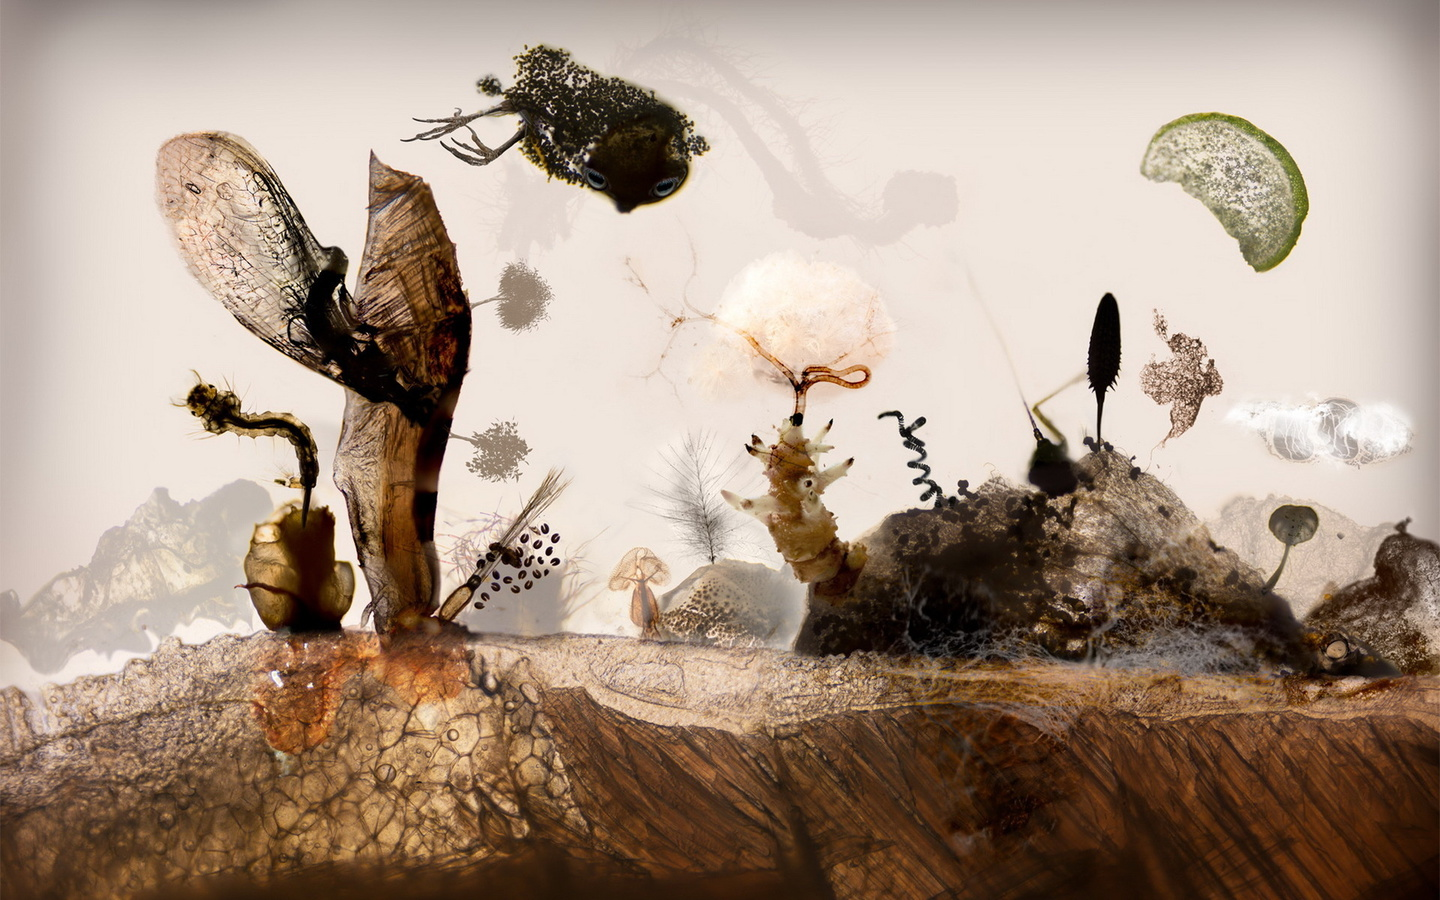 landscape, Microscopy, seeds, meat, insects, fish